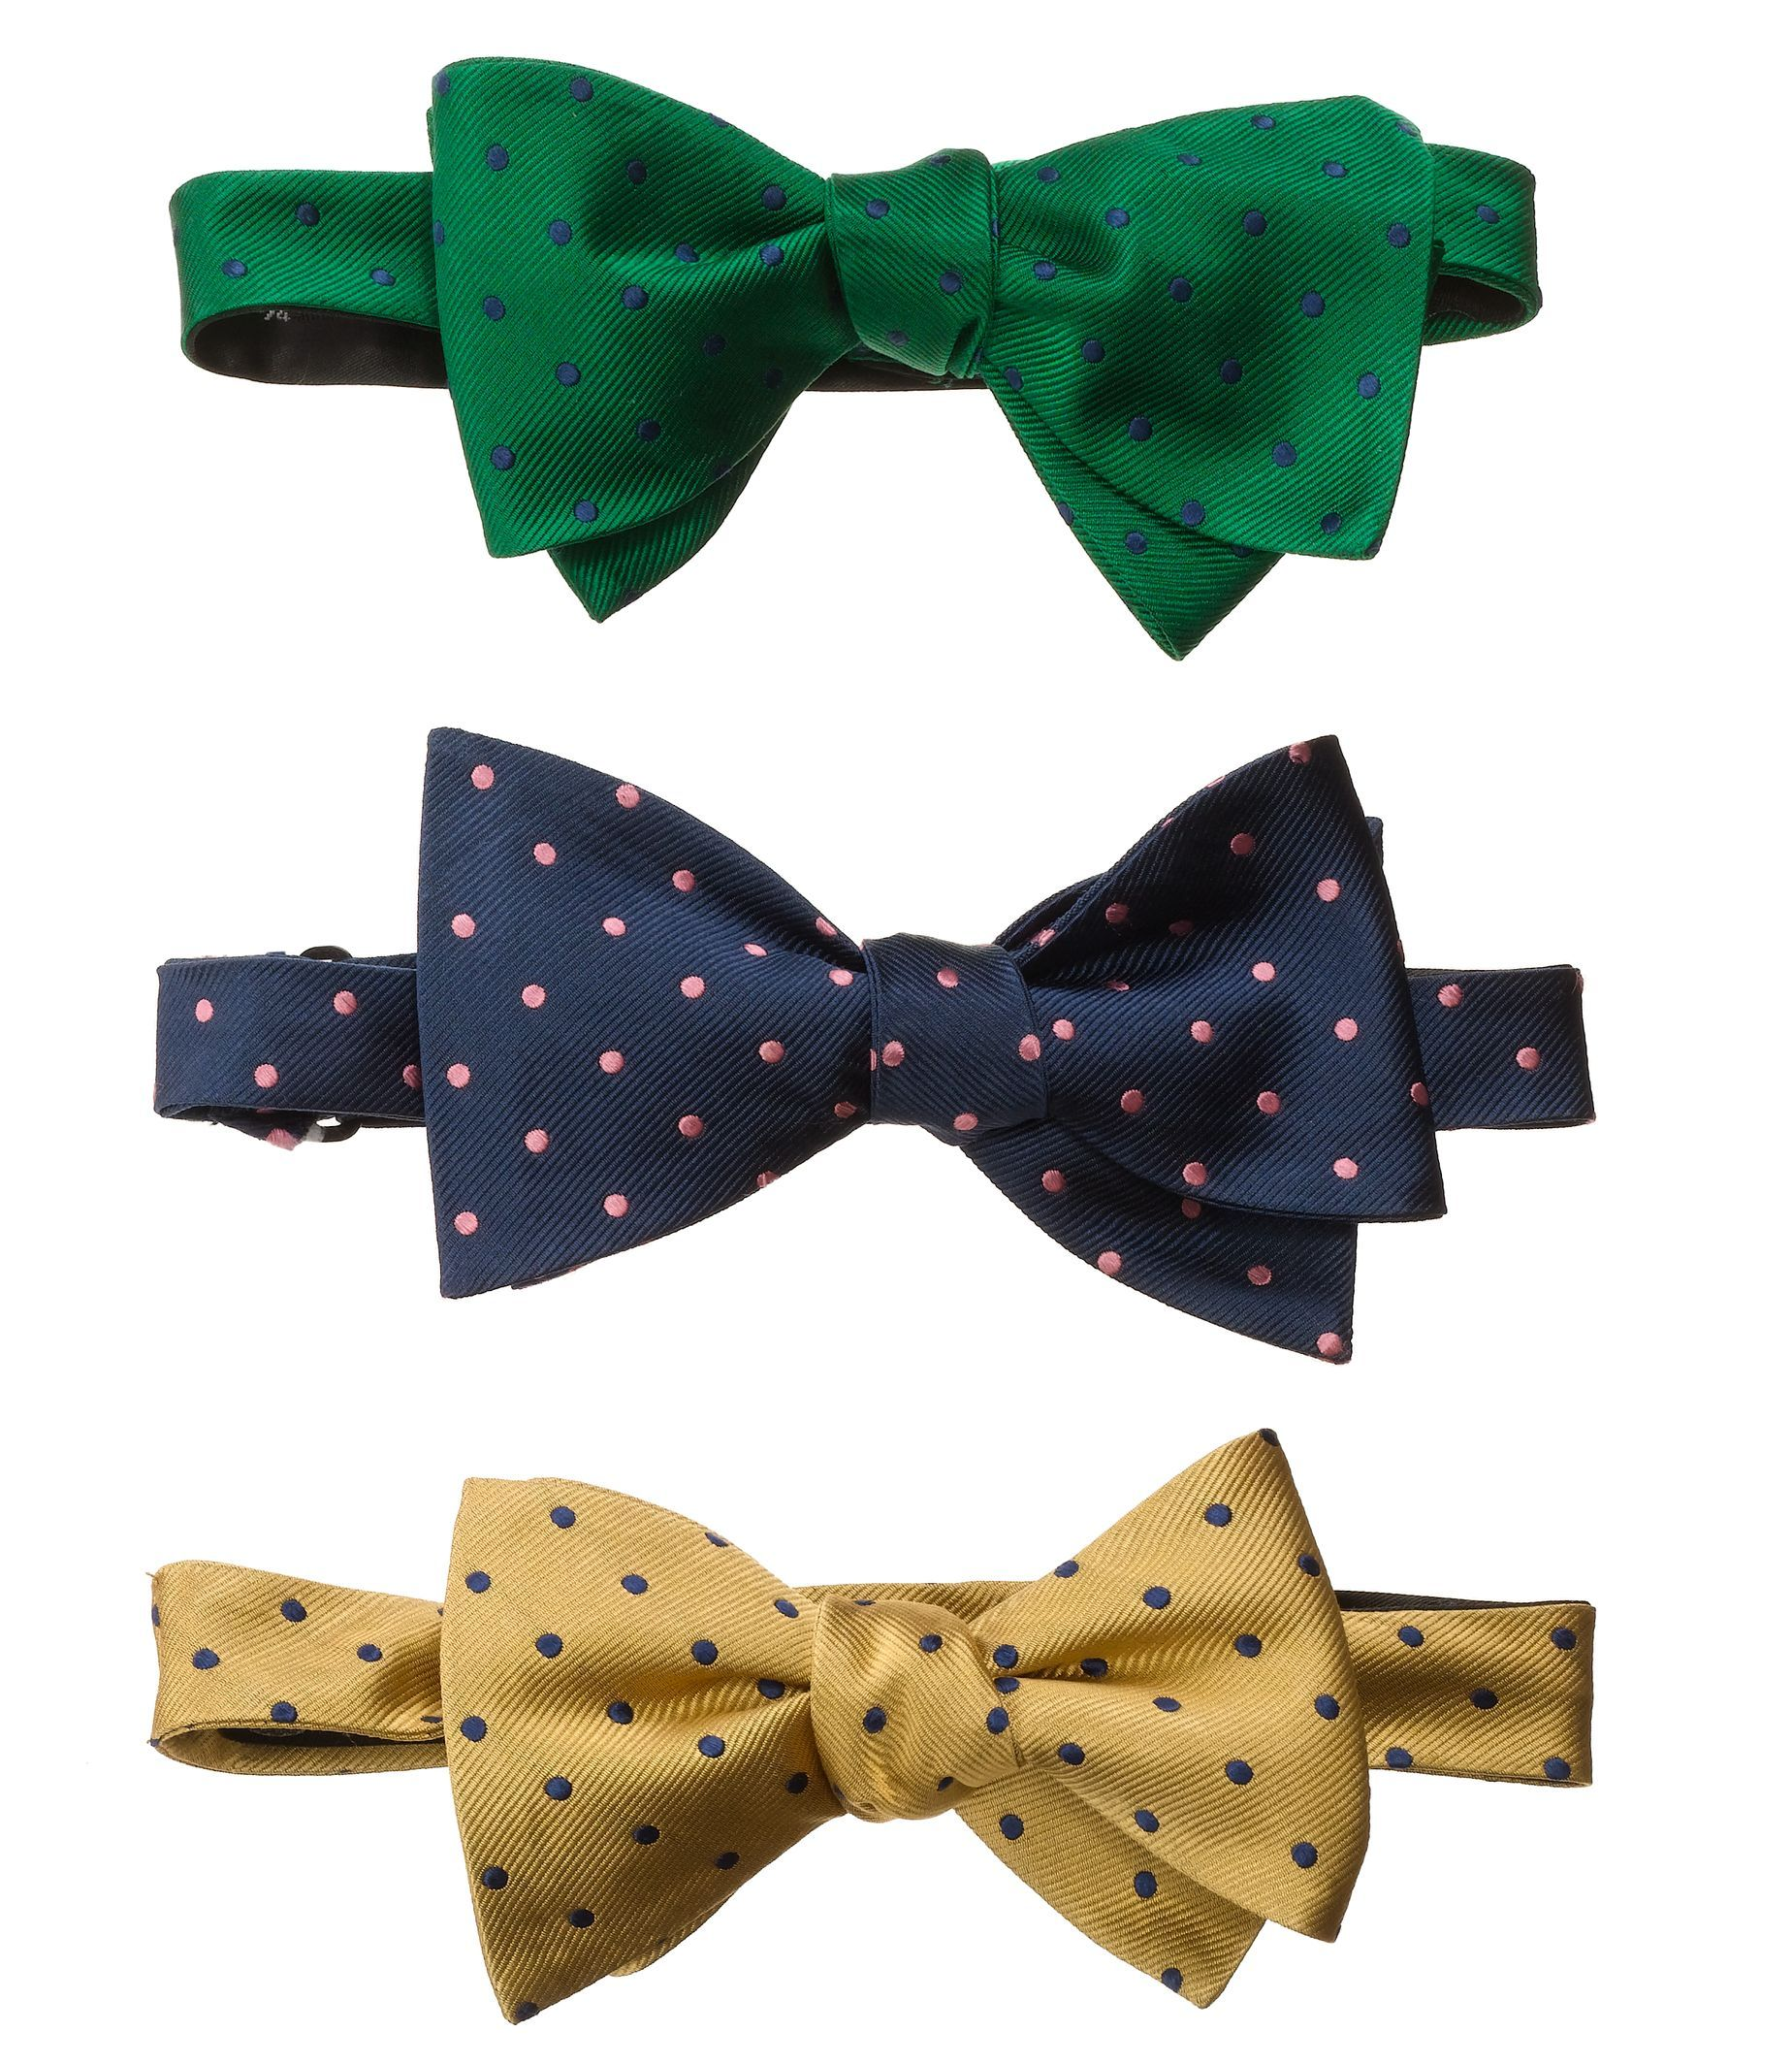 c07d942cdcb8 Vintage Style 1920s Mens Ties and Bow Ties for Sale - RM Fashion Guide